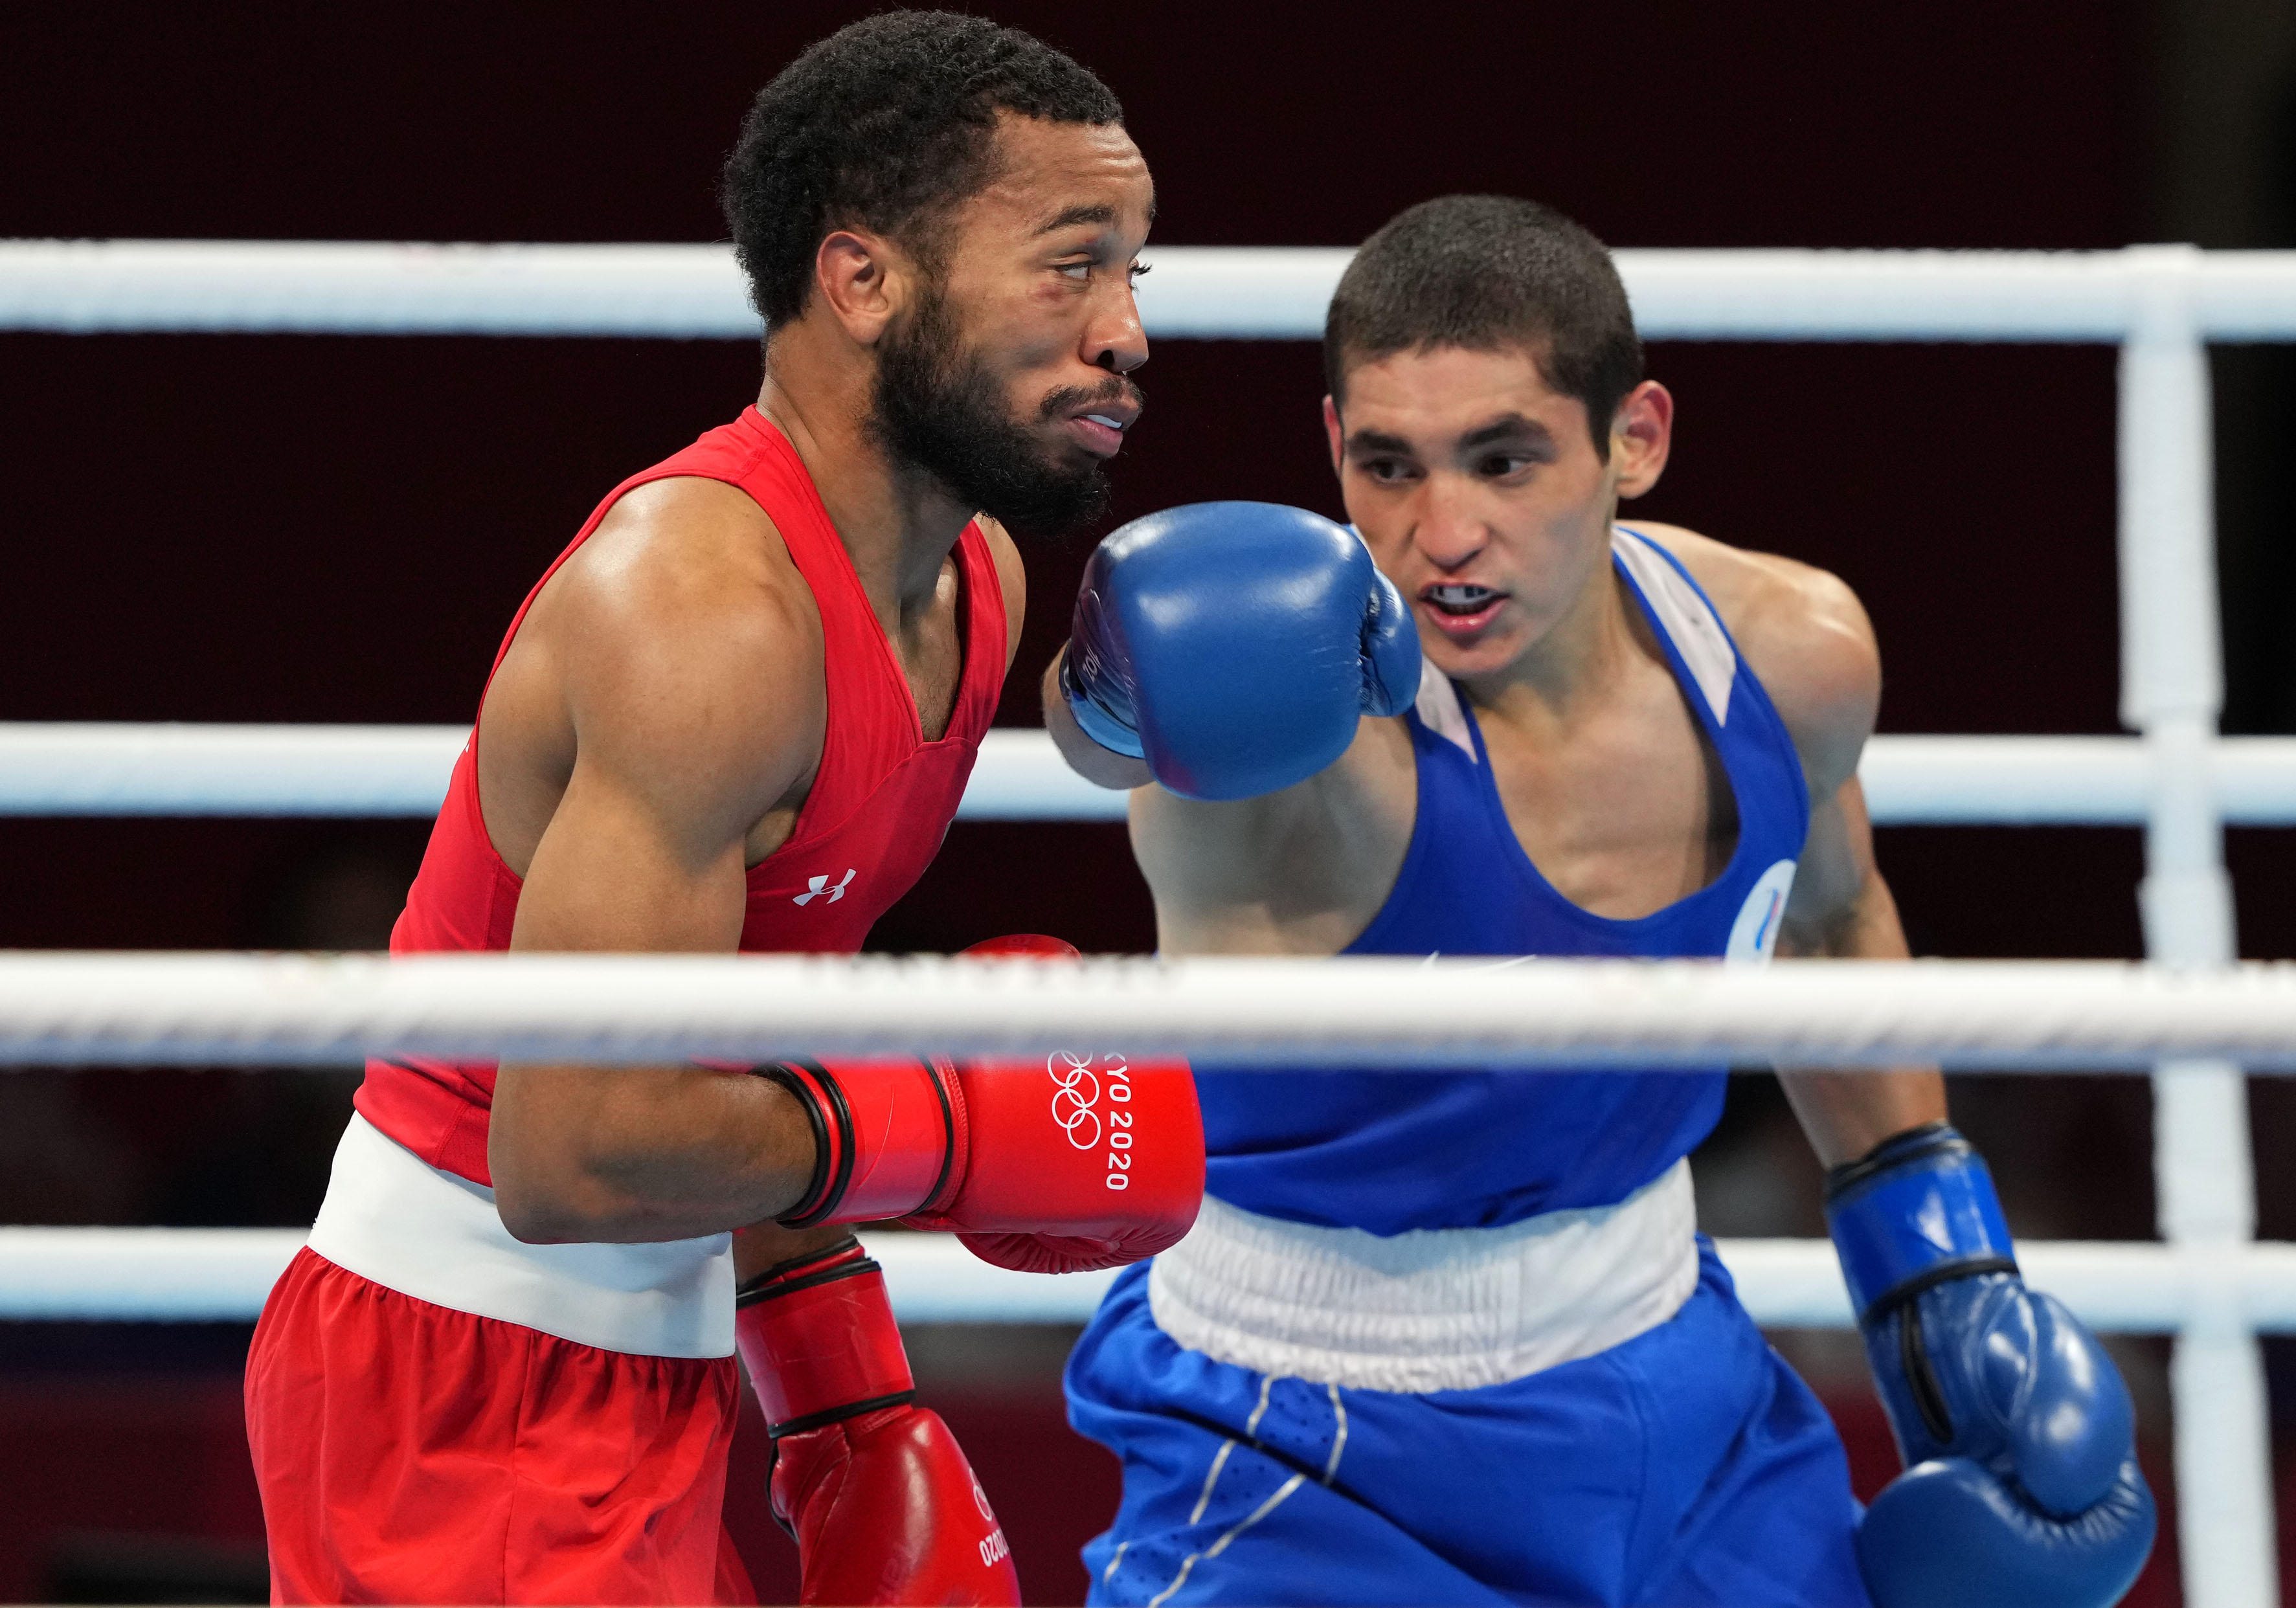 Albert Batyrgaziev becomes first professional boxer to win Olympic gold